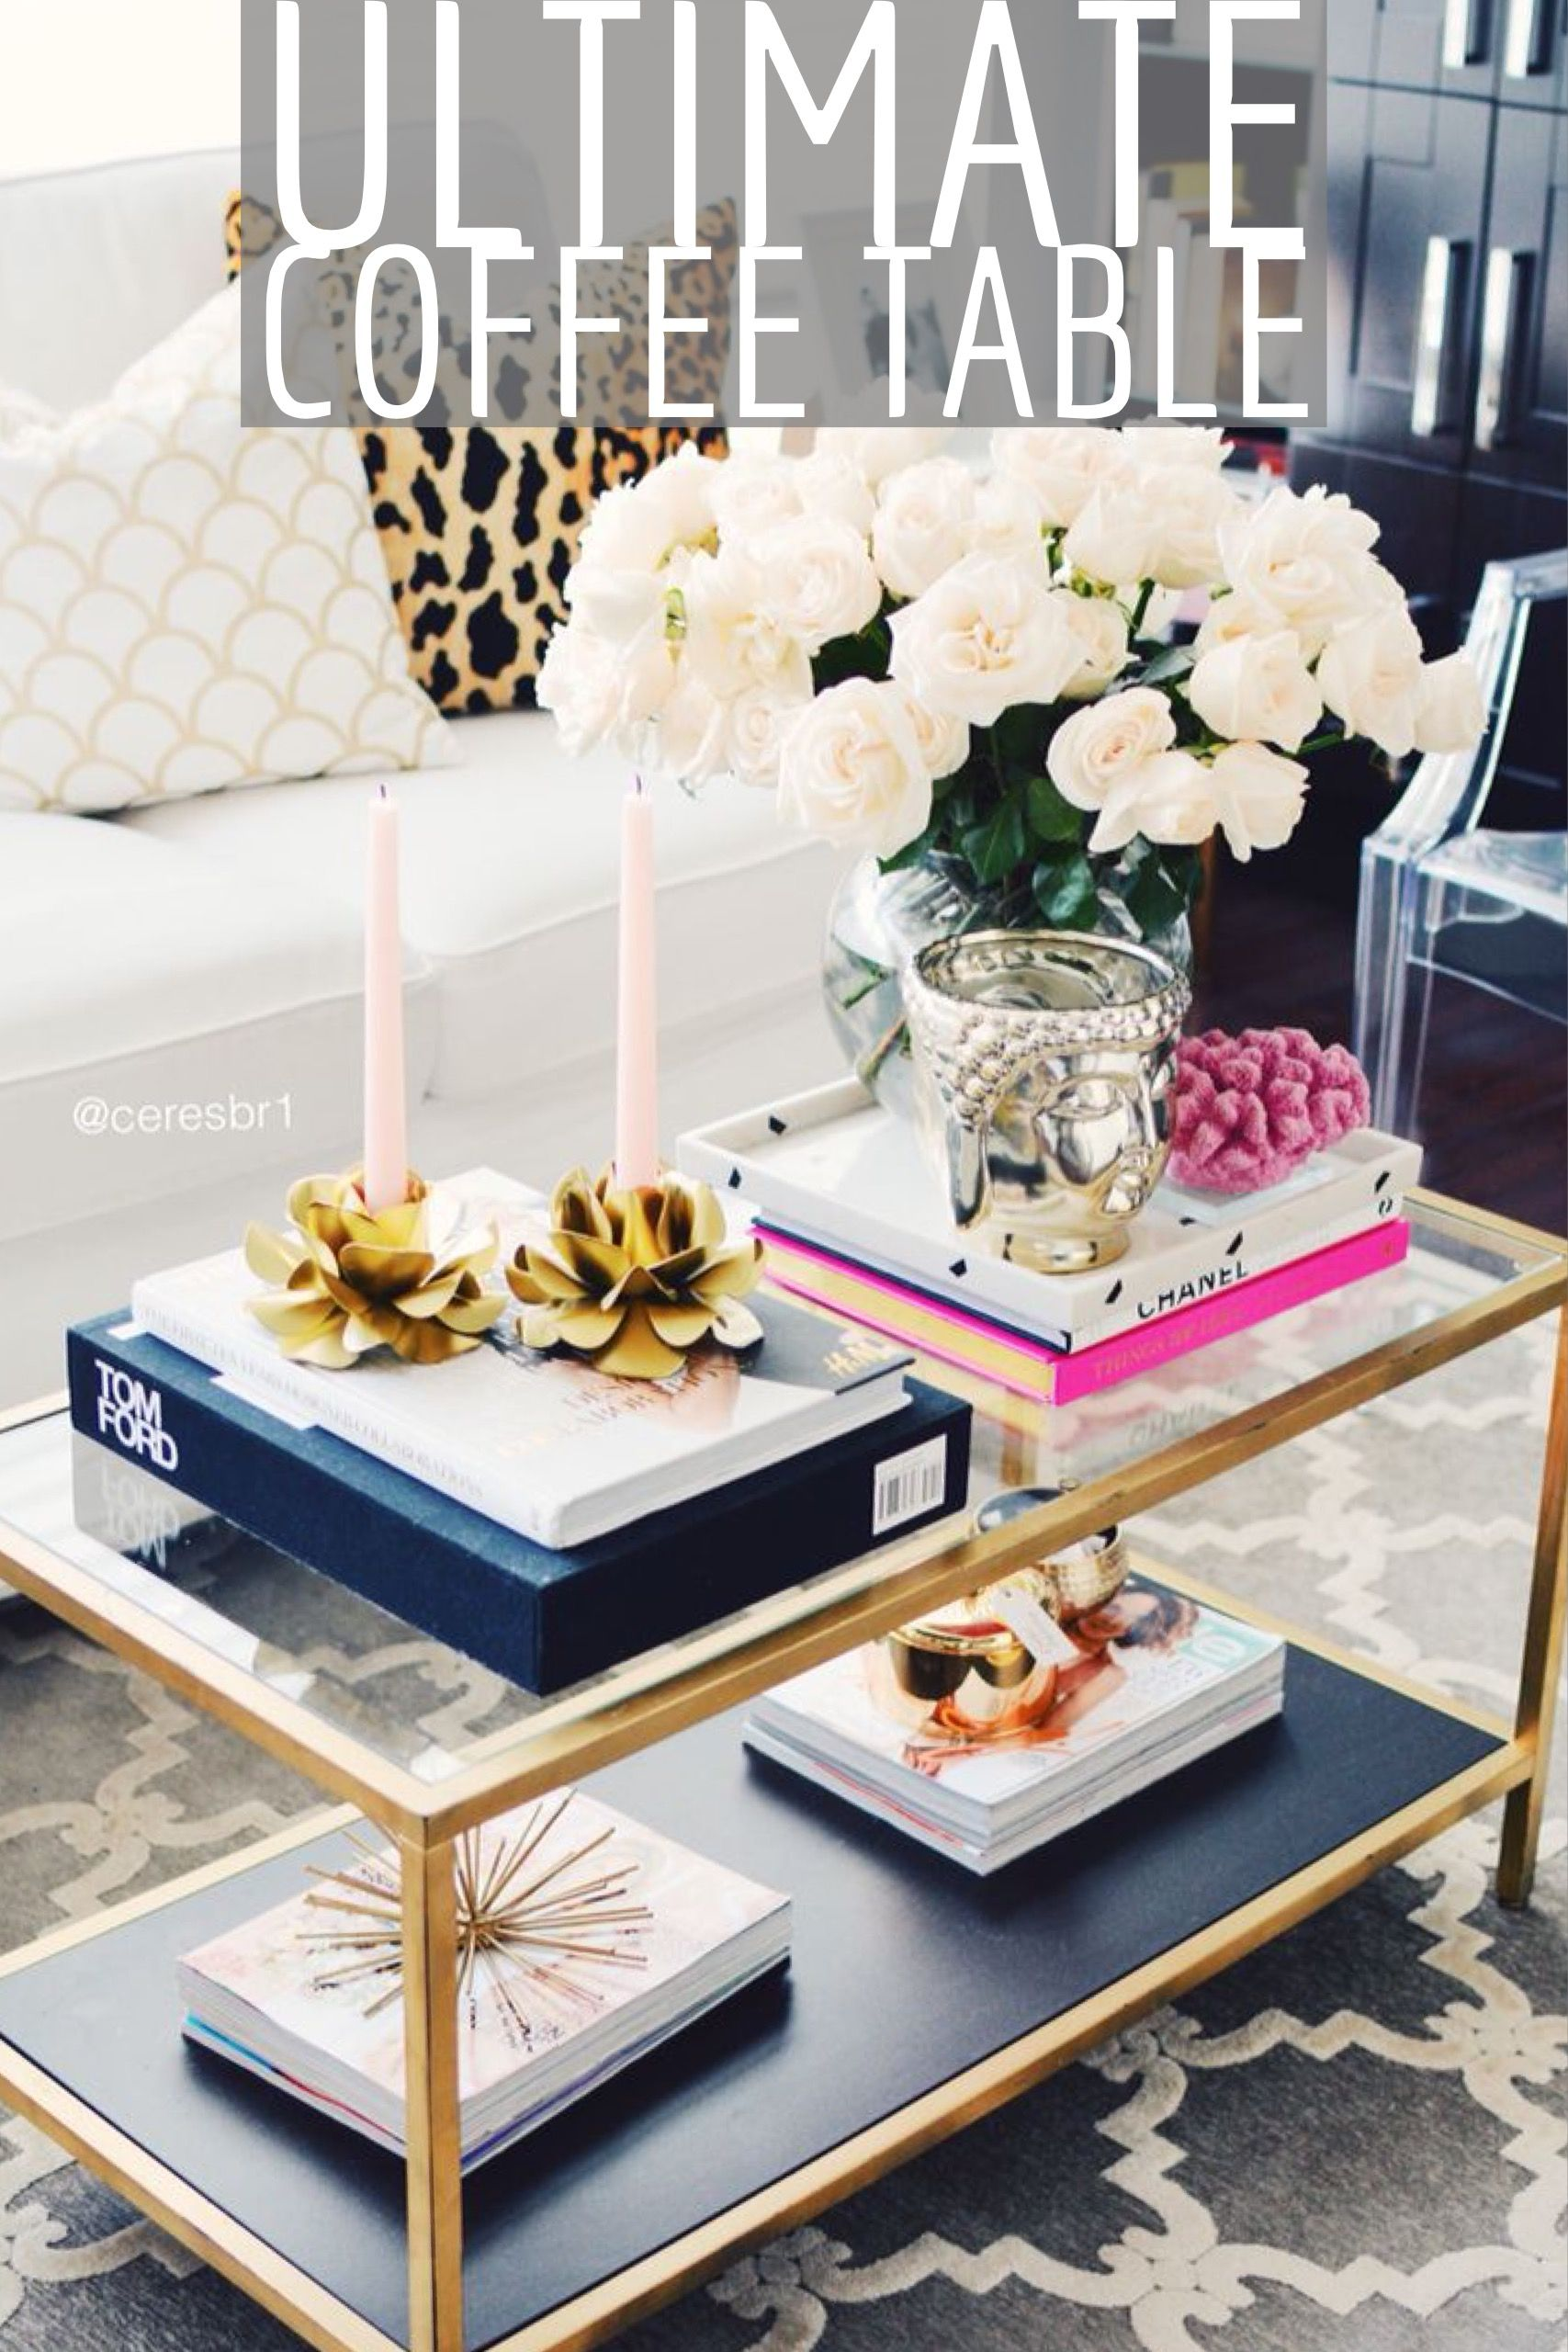 How To Design A Coffee Table With Candles Books Flowers And Accessories Coffeetable Decor Coffee Table Ikea Coffee Table